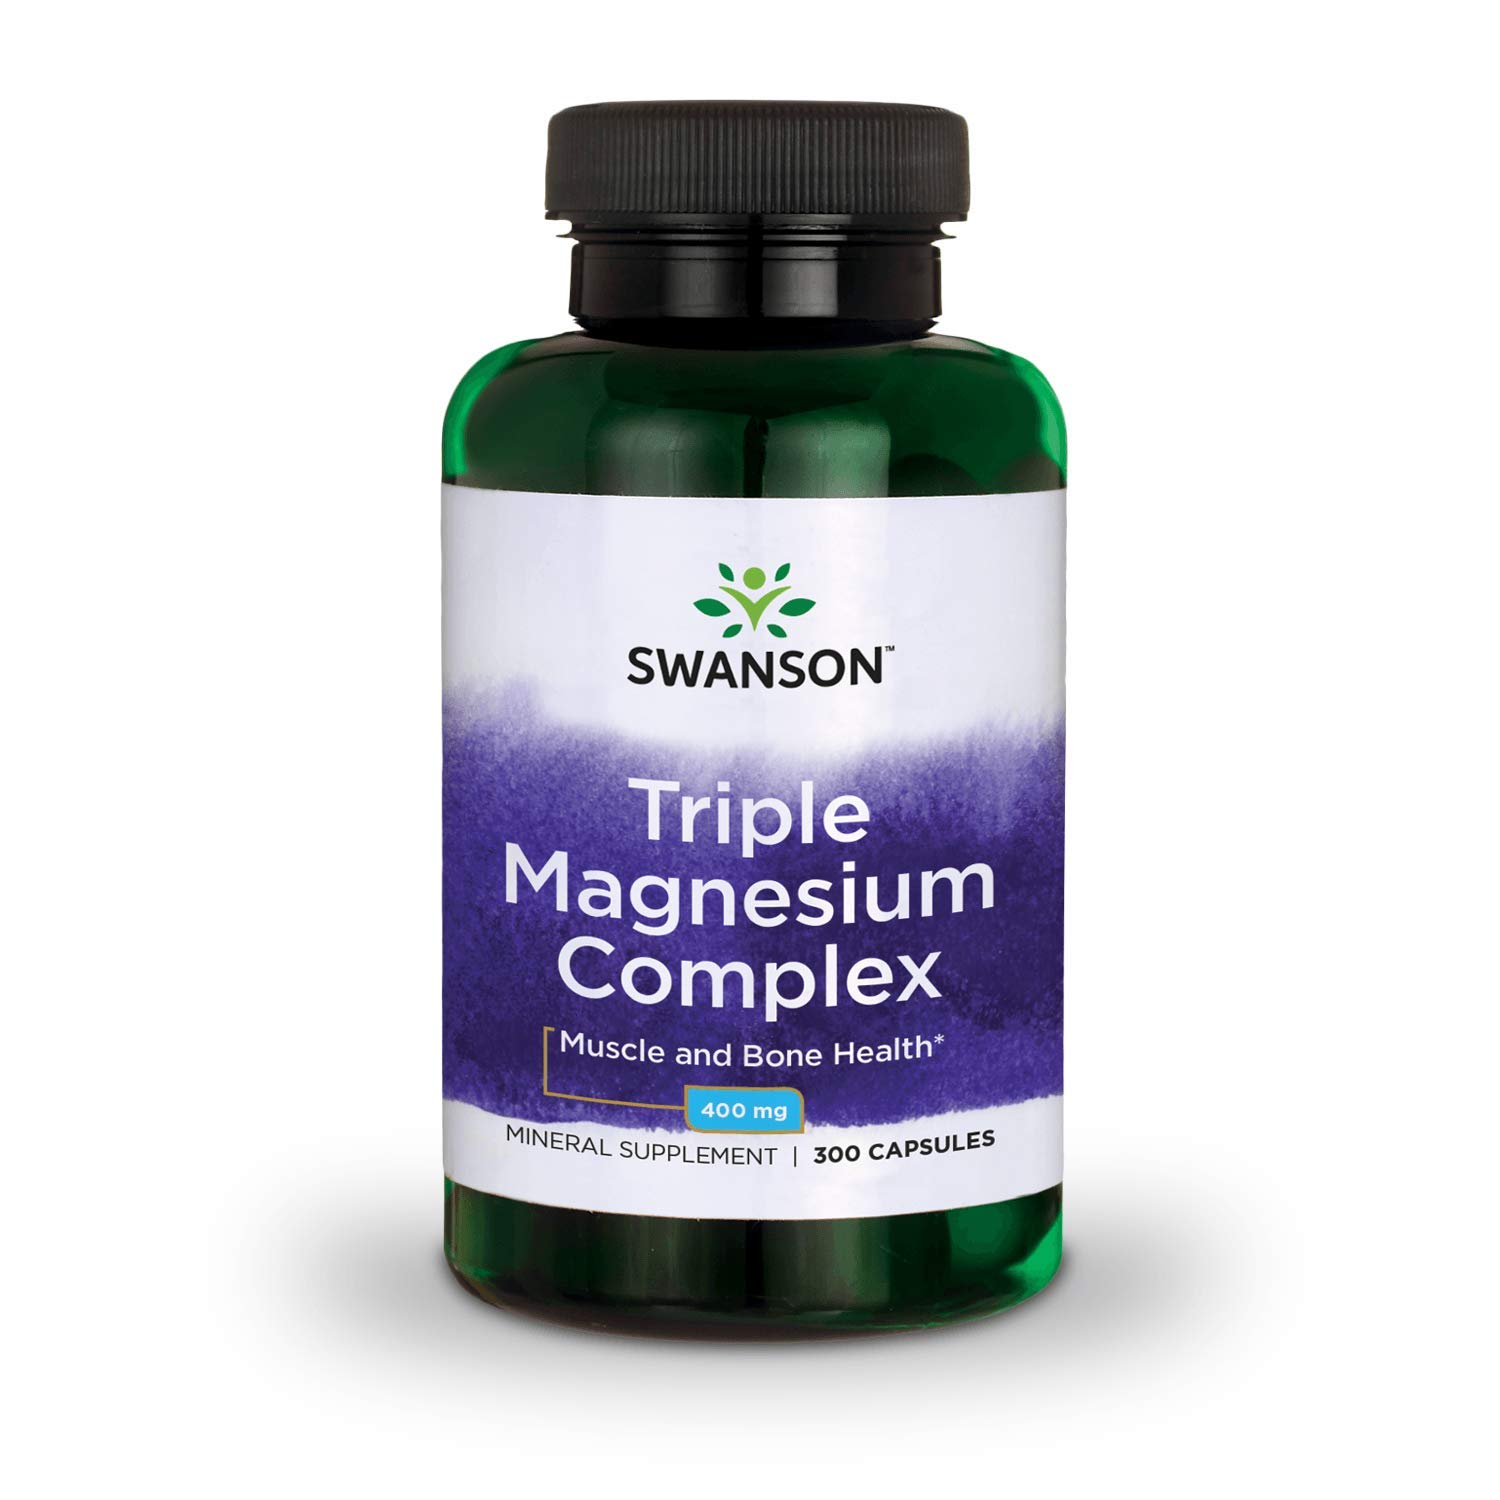 Swanson Triple Magnesium Complex Absorption Bone and Mood Health Citrate Oxide and Aspartate Combination Supplement 400